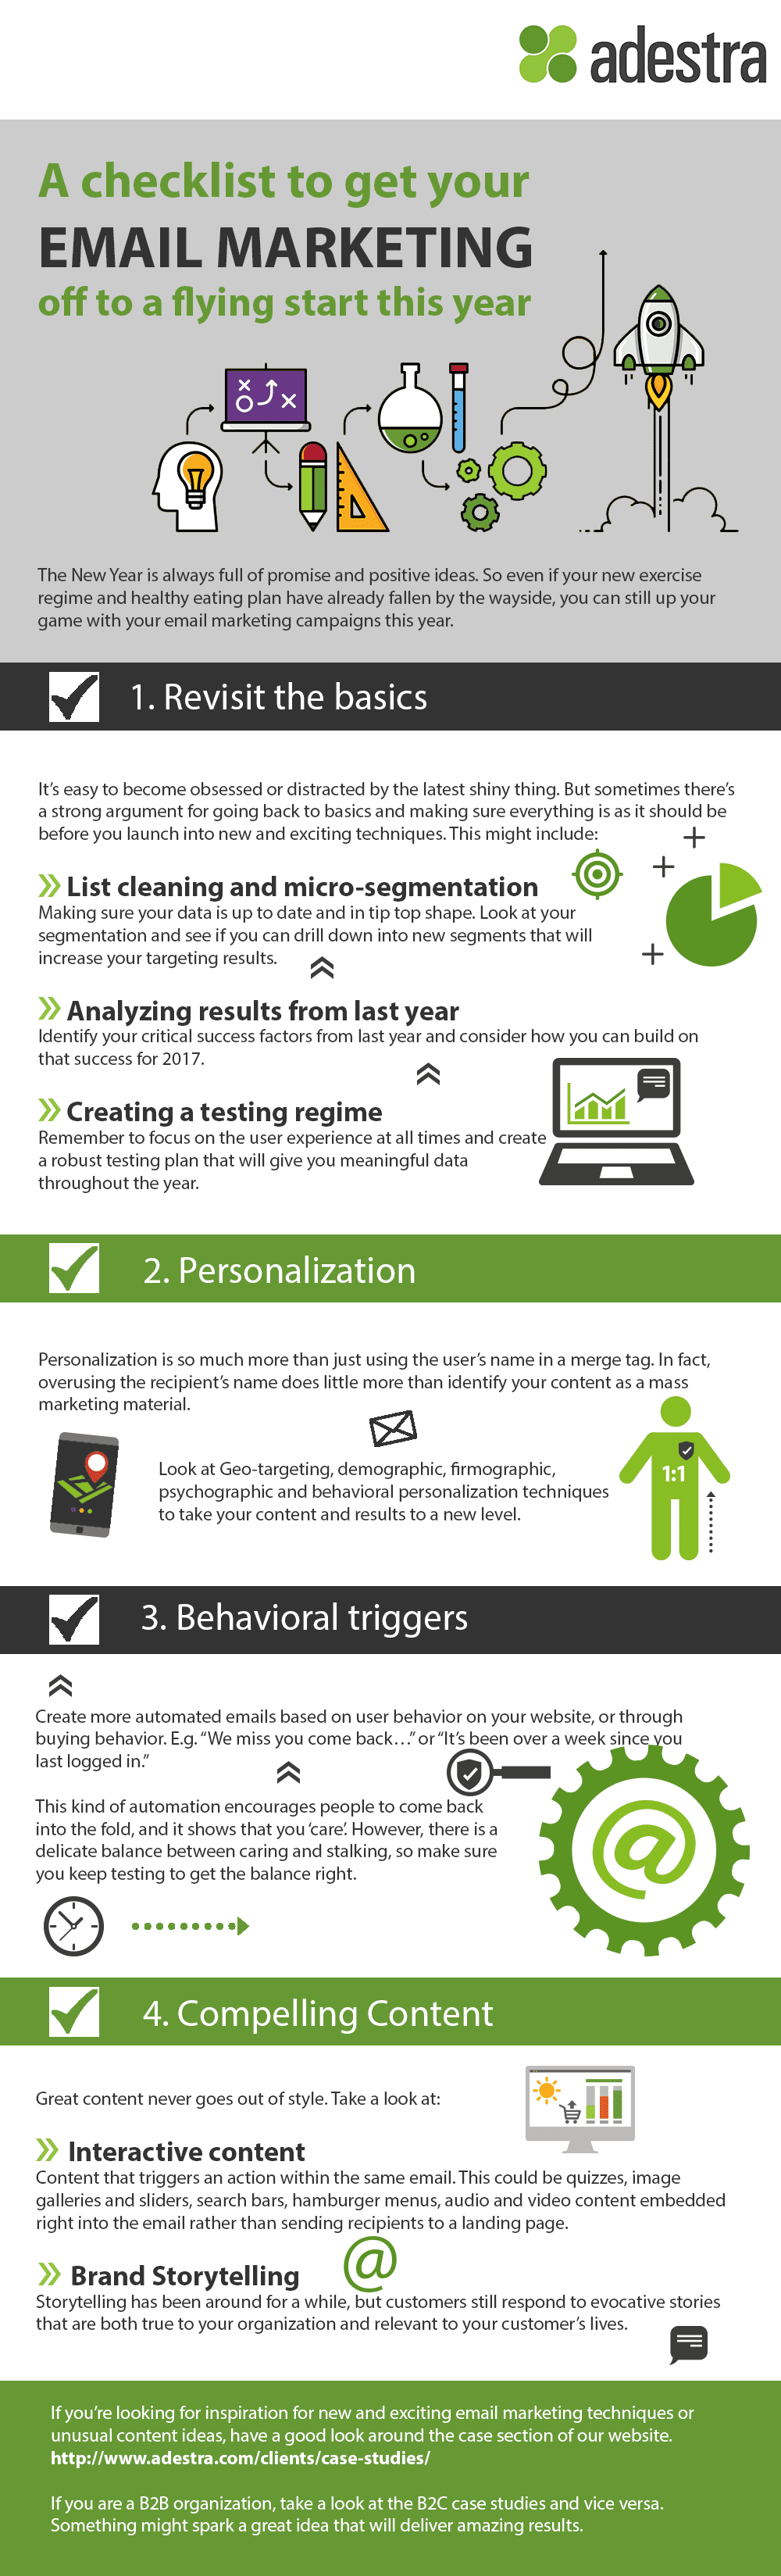 A Checklist To Get Your Email Marketing Off To a Flying Start This Year #Infographic